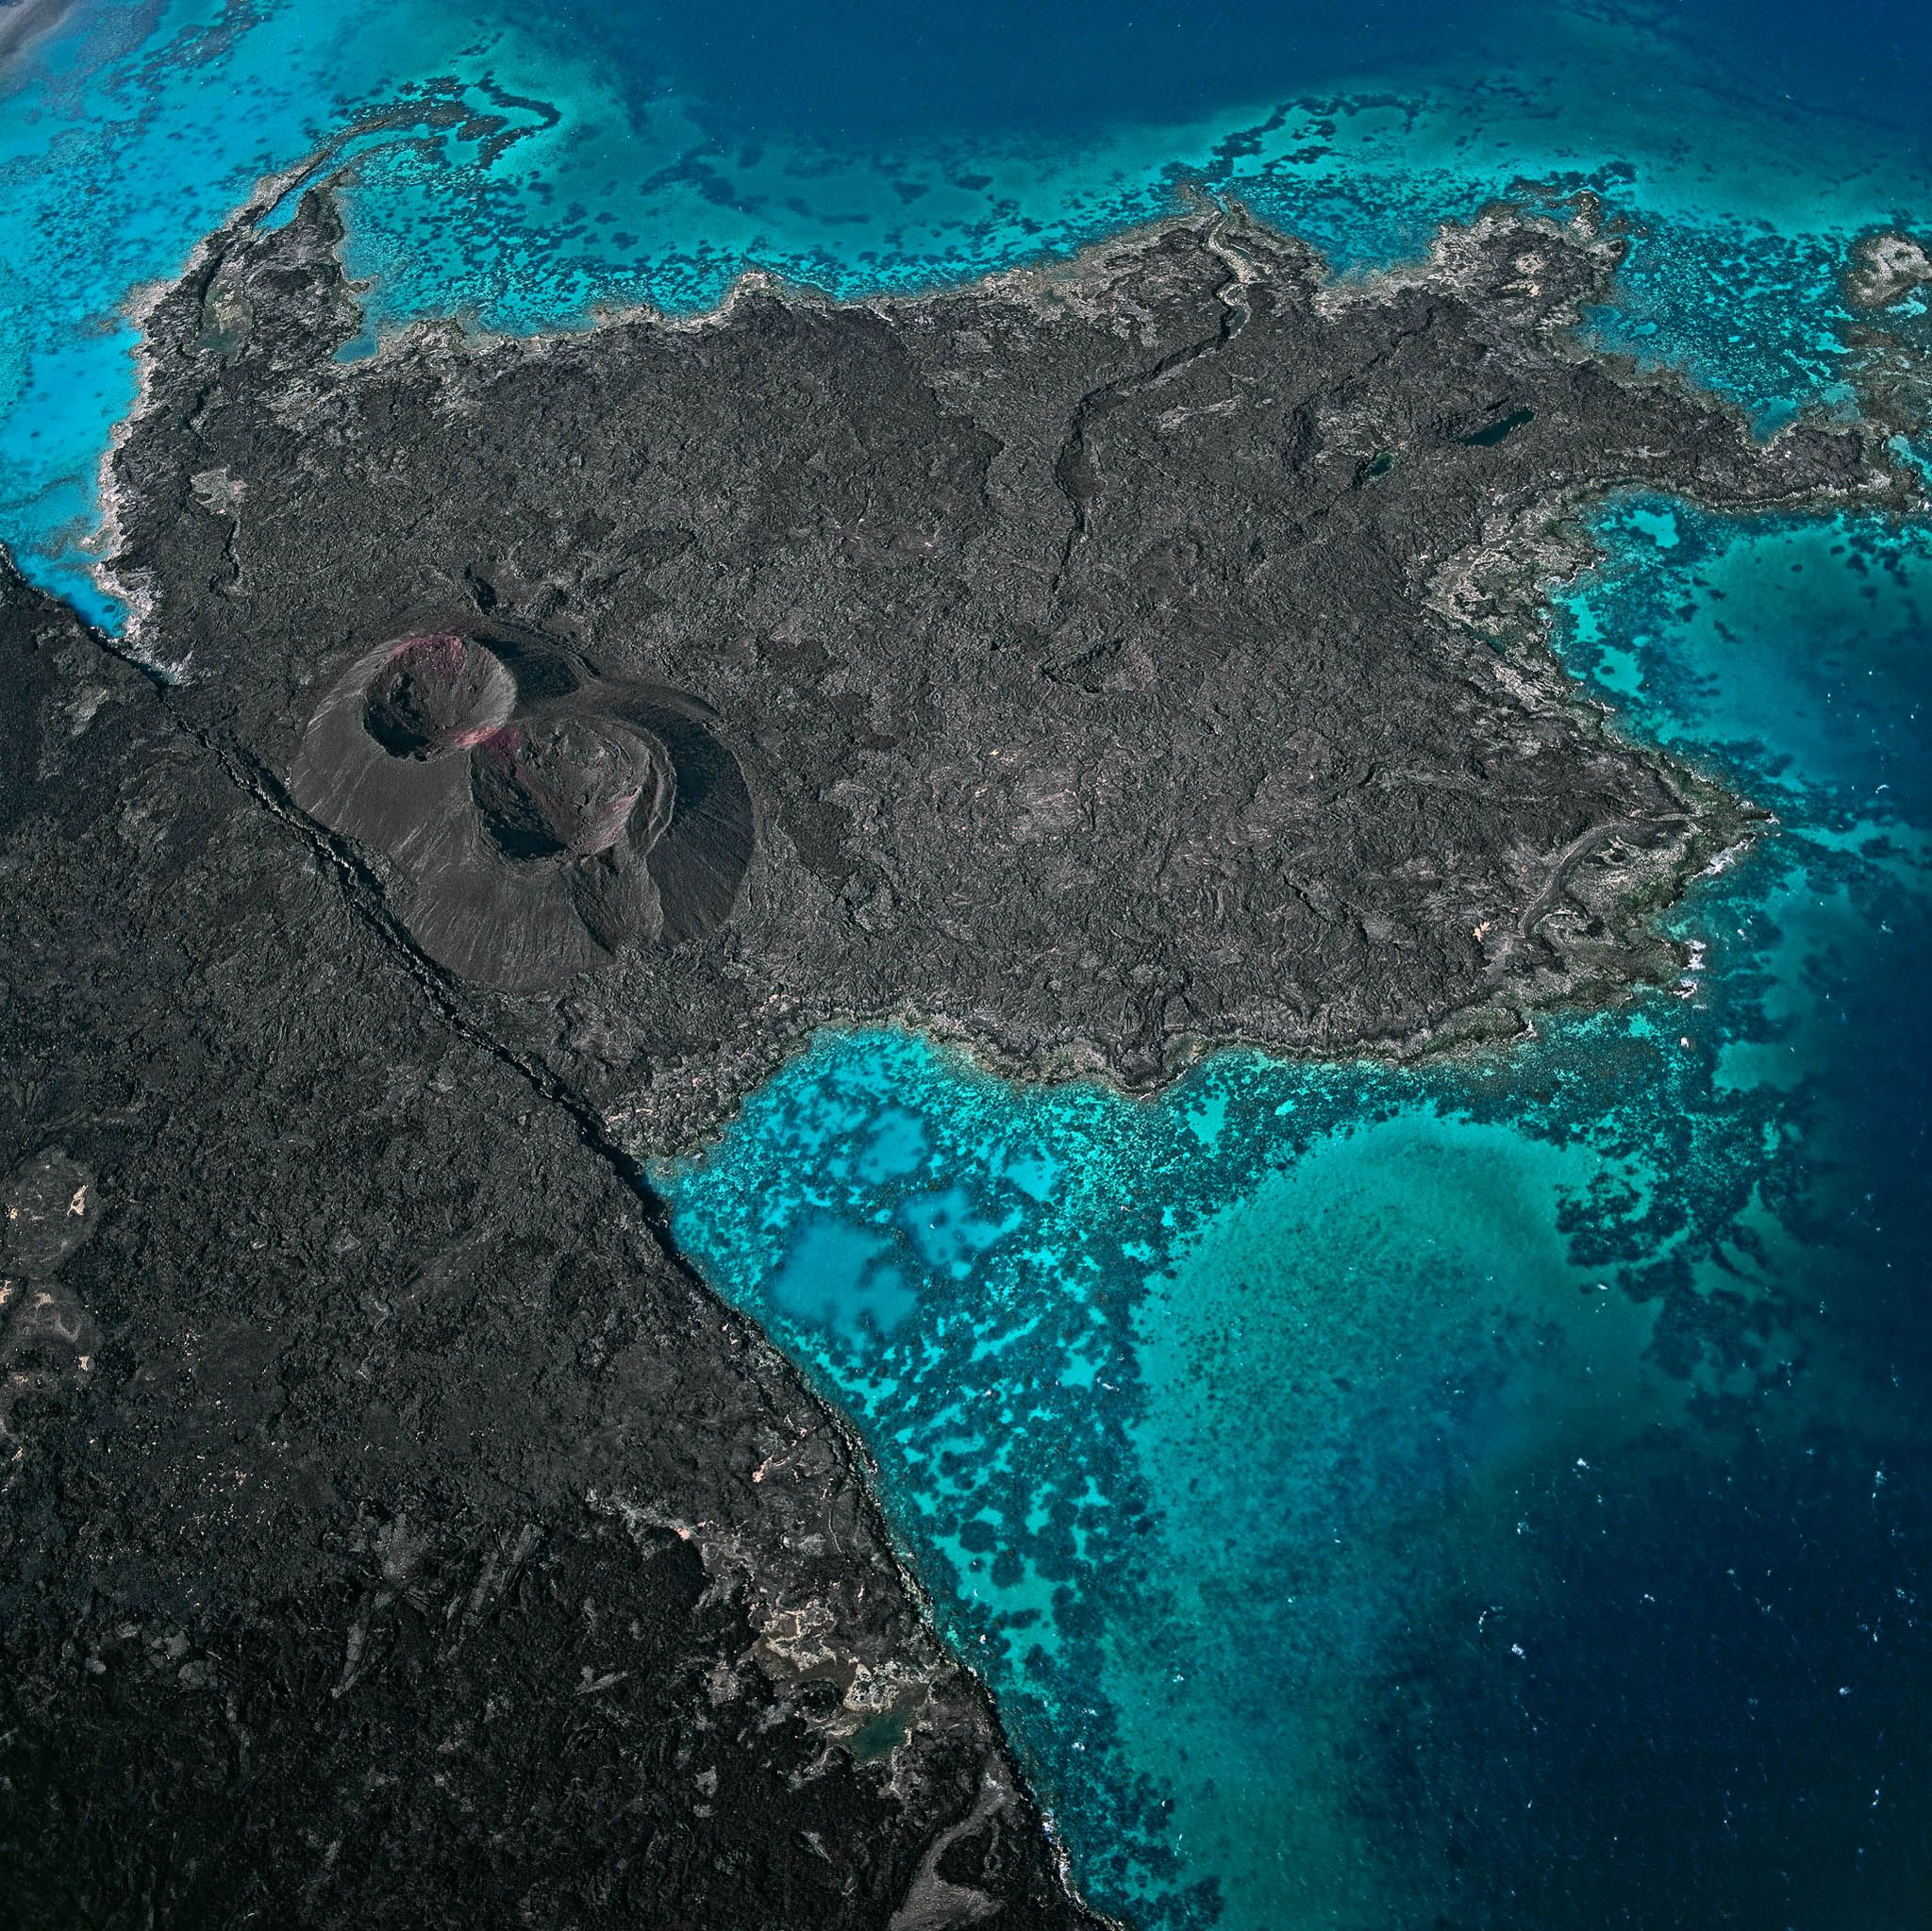 Africa Map Horn Of Africa%0A Picture of volcanos from above  Ghoubbet Kharab cove  Djibouti  Africa  The  Bay